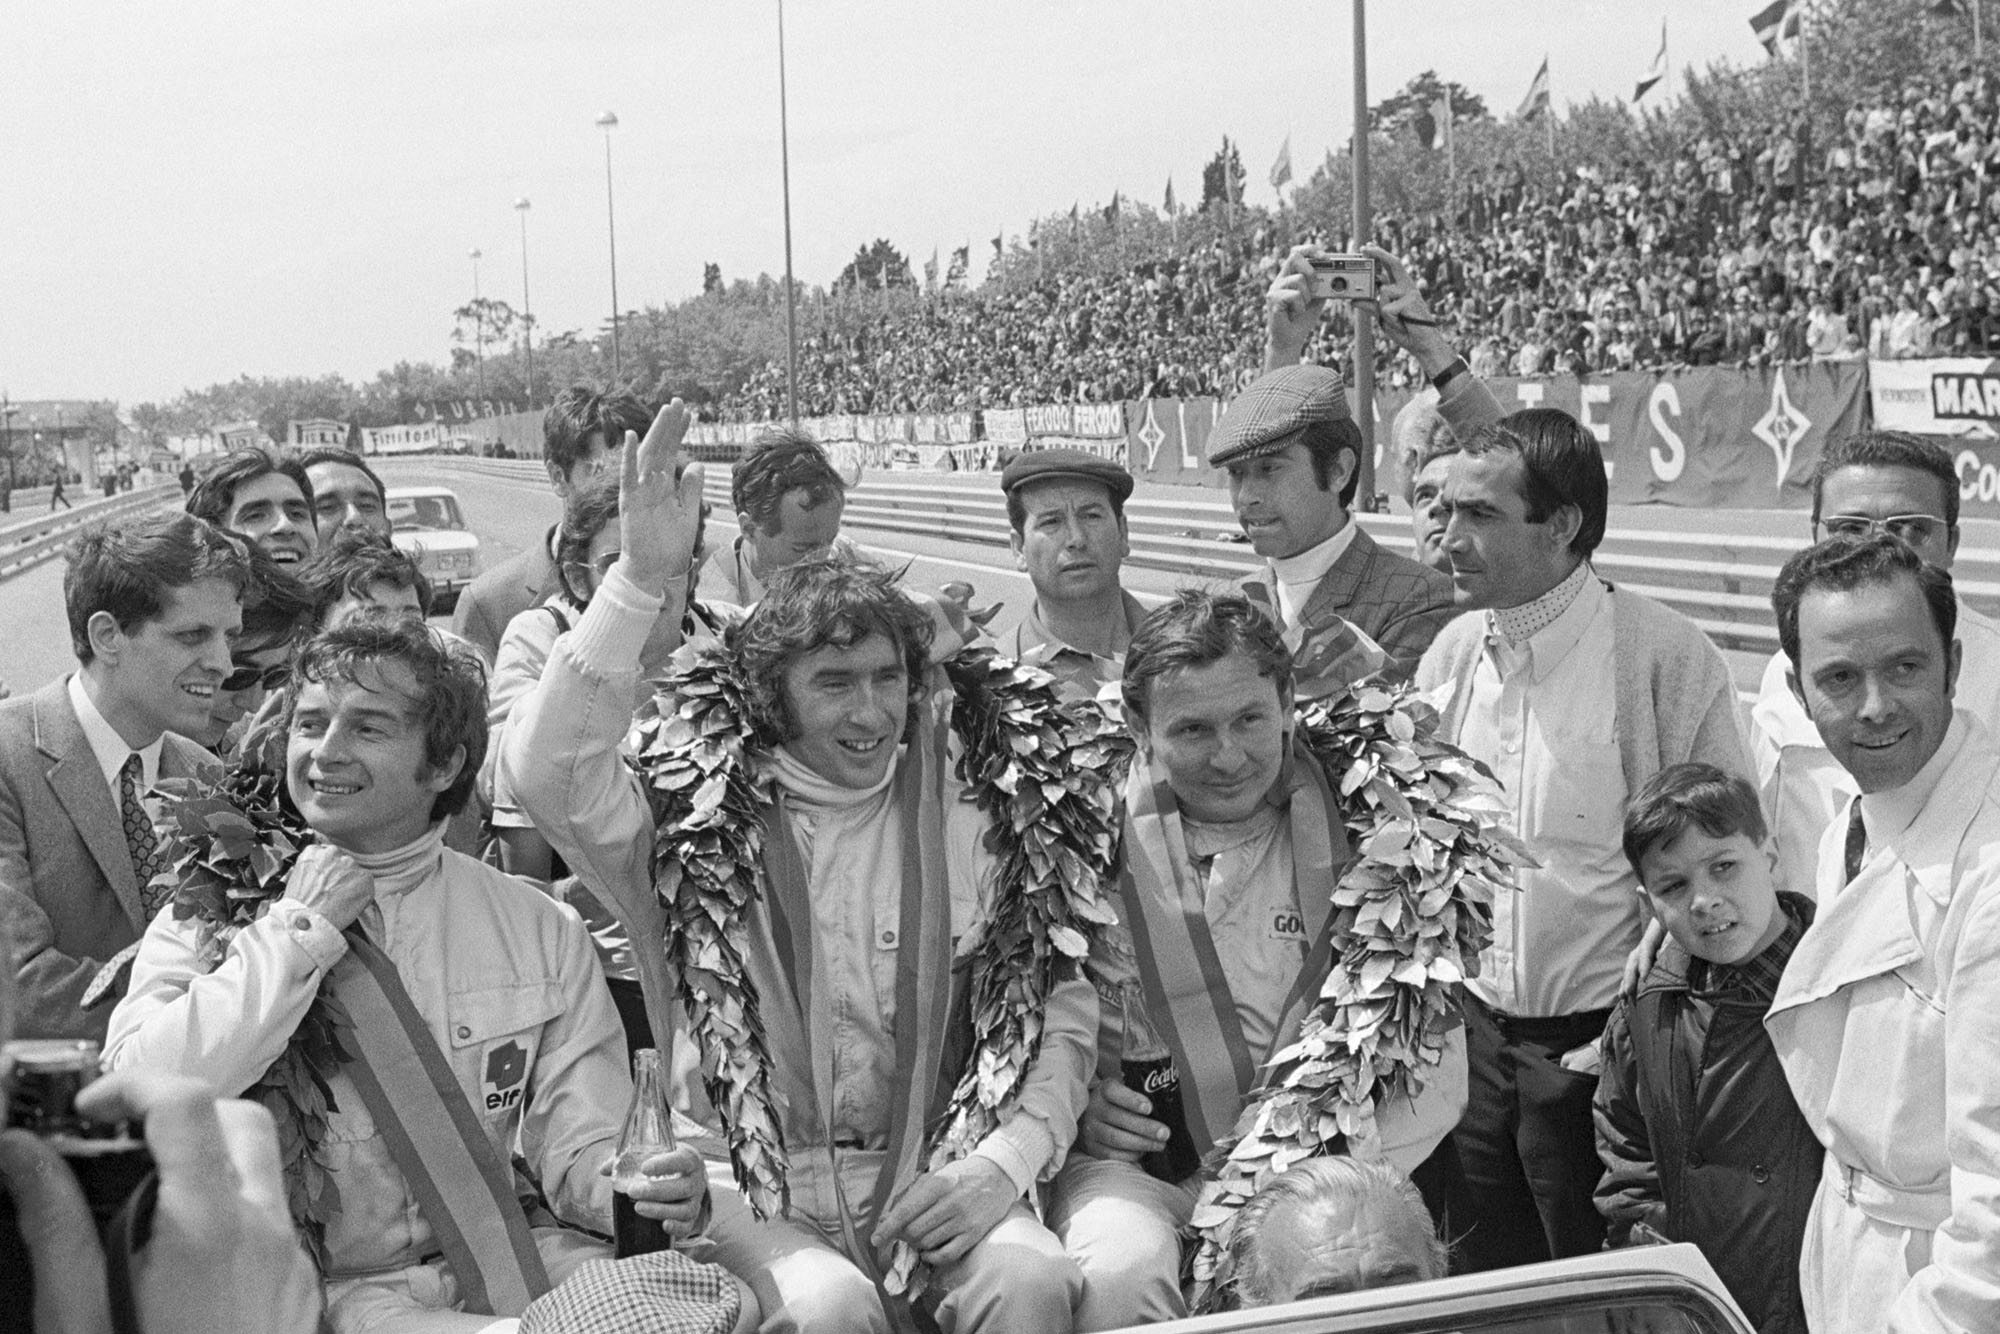 Jackie Stewart celebrates winning the 1969 Spanish Grand Prix.